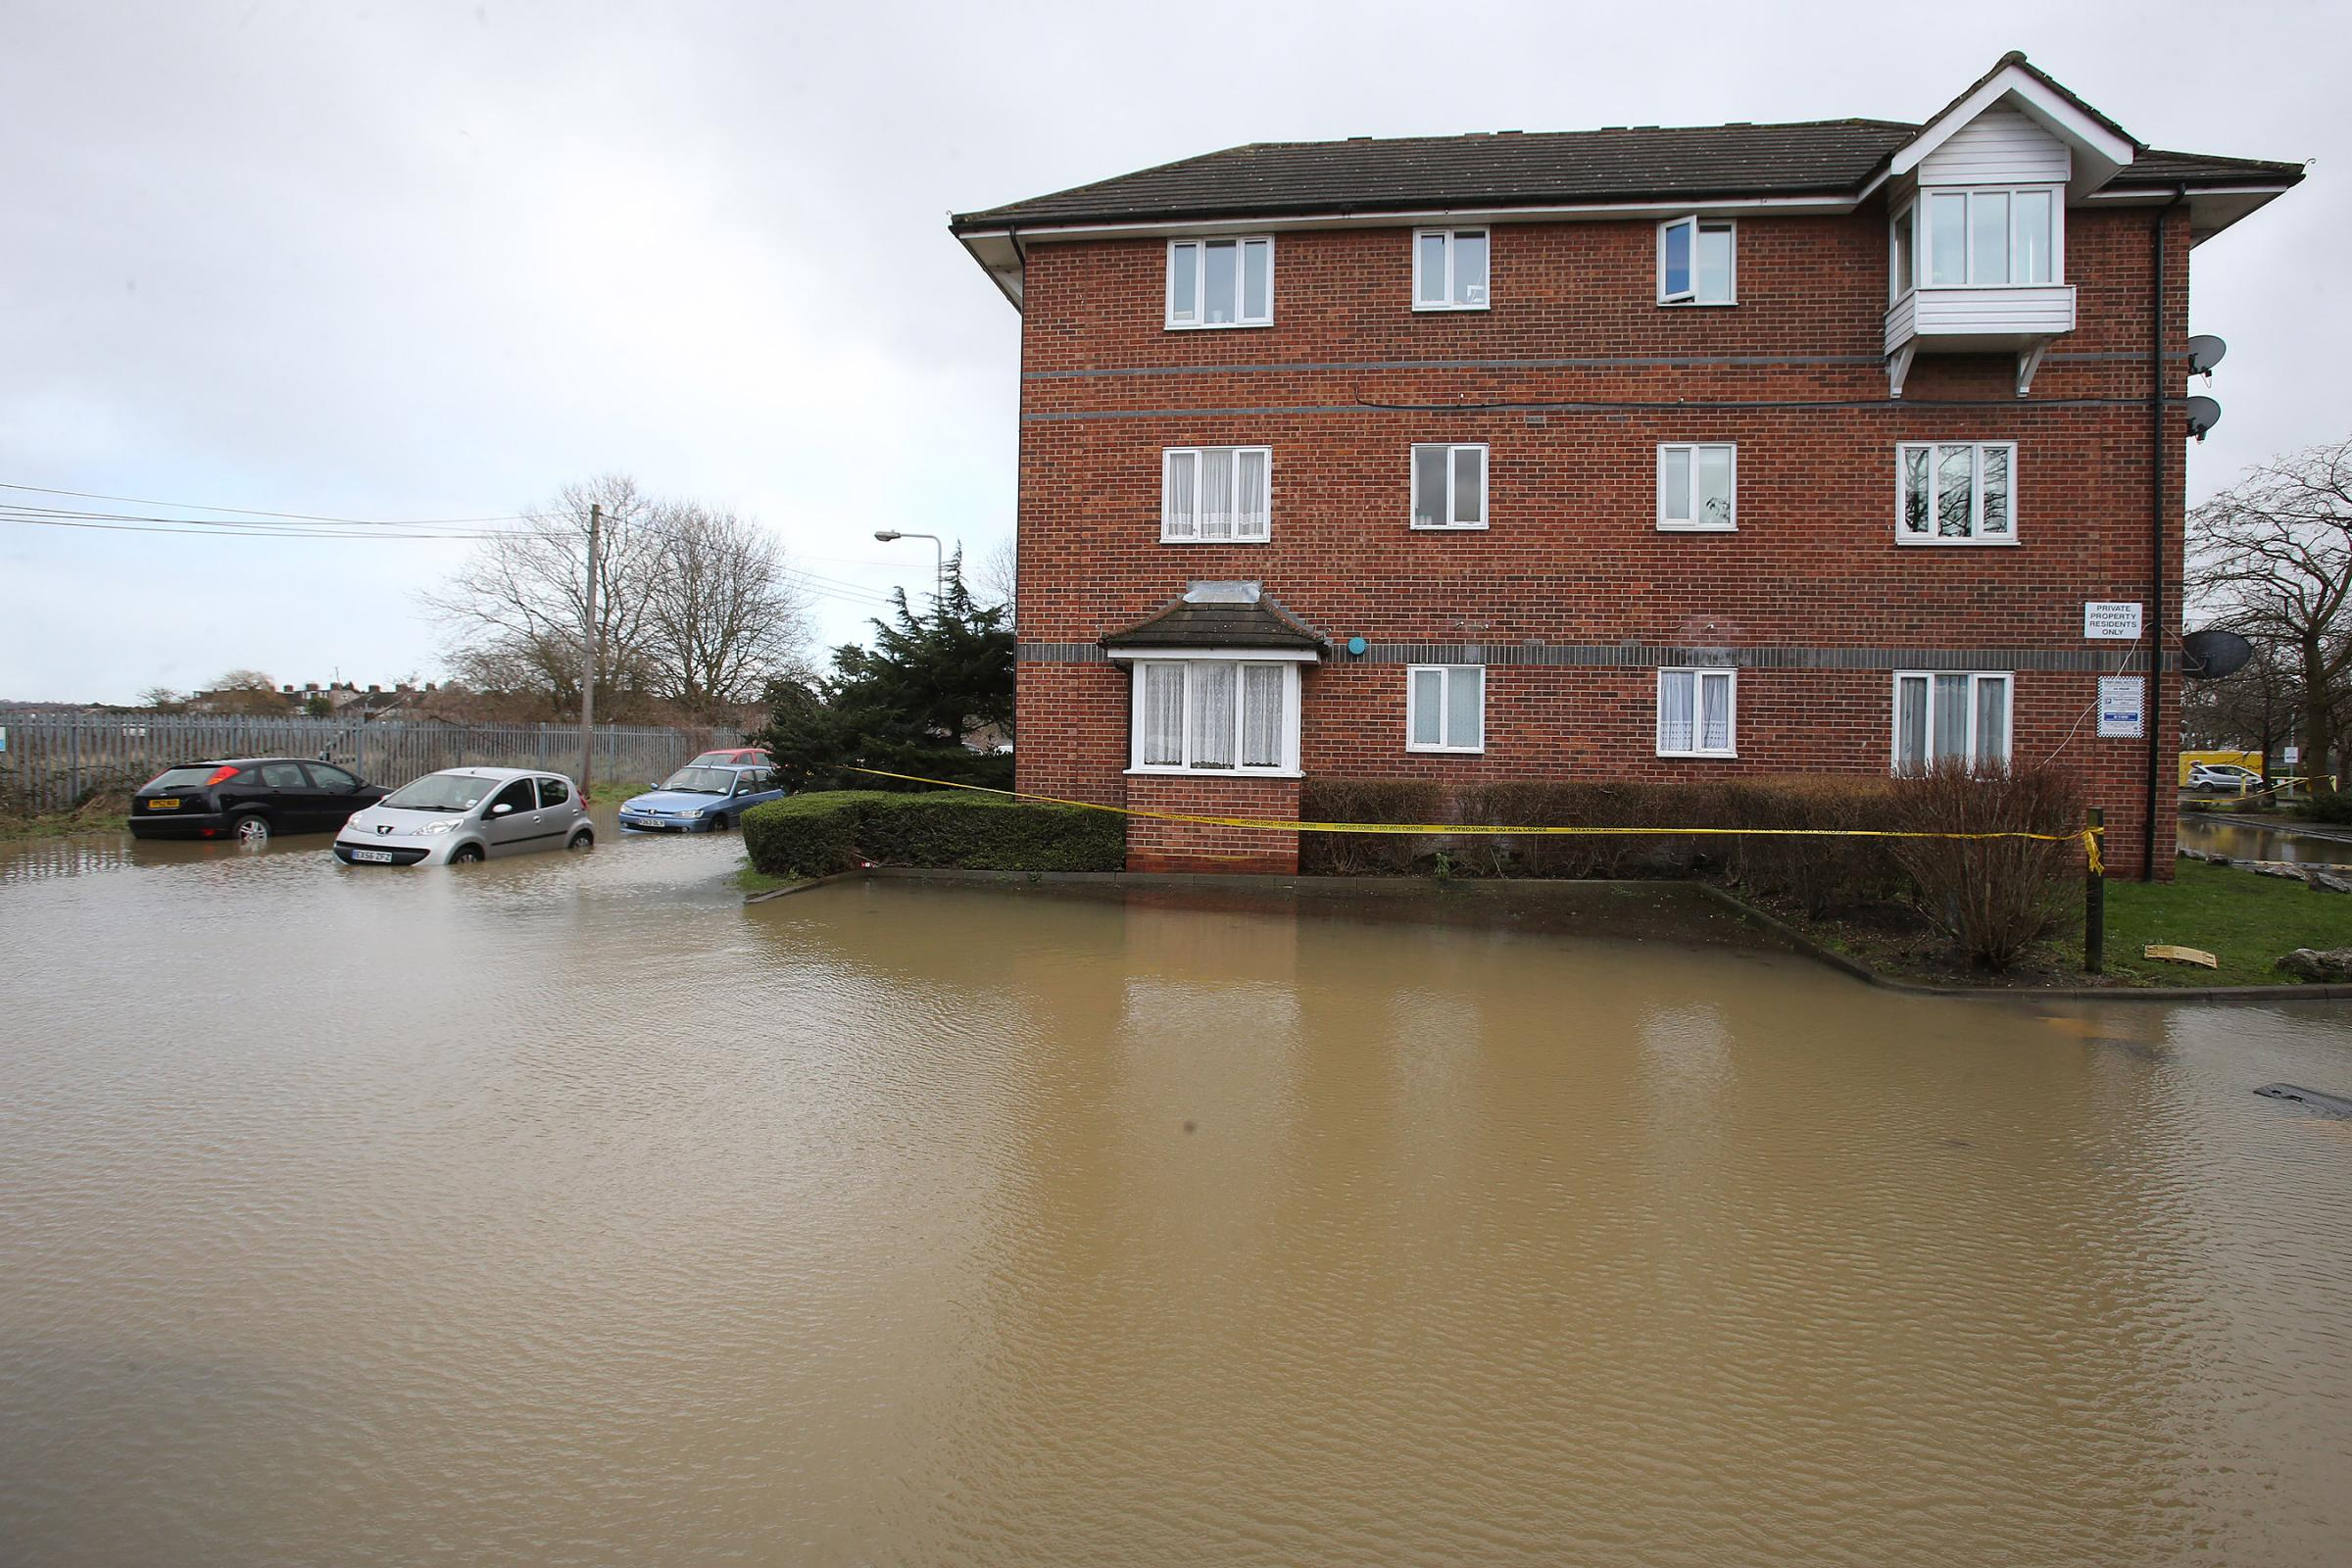 Flooding in Lower Hall Lane, Chingford.